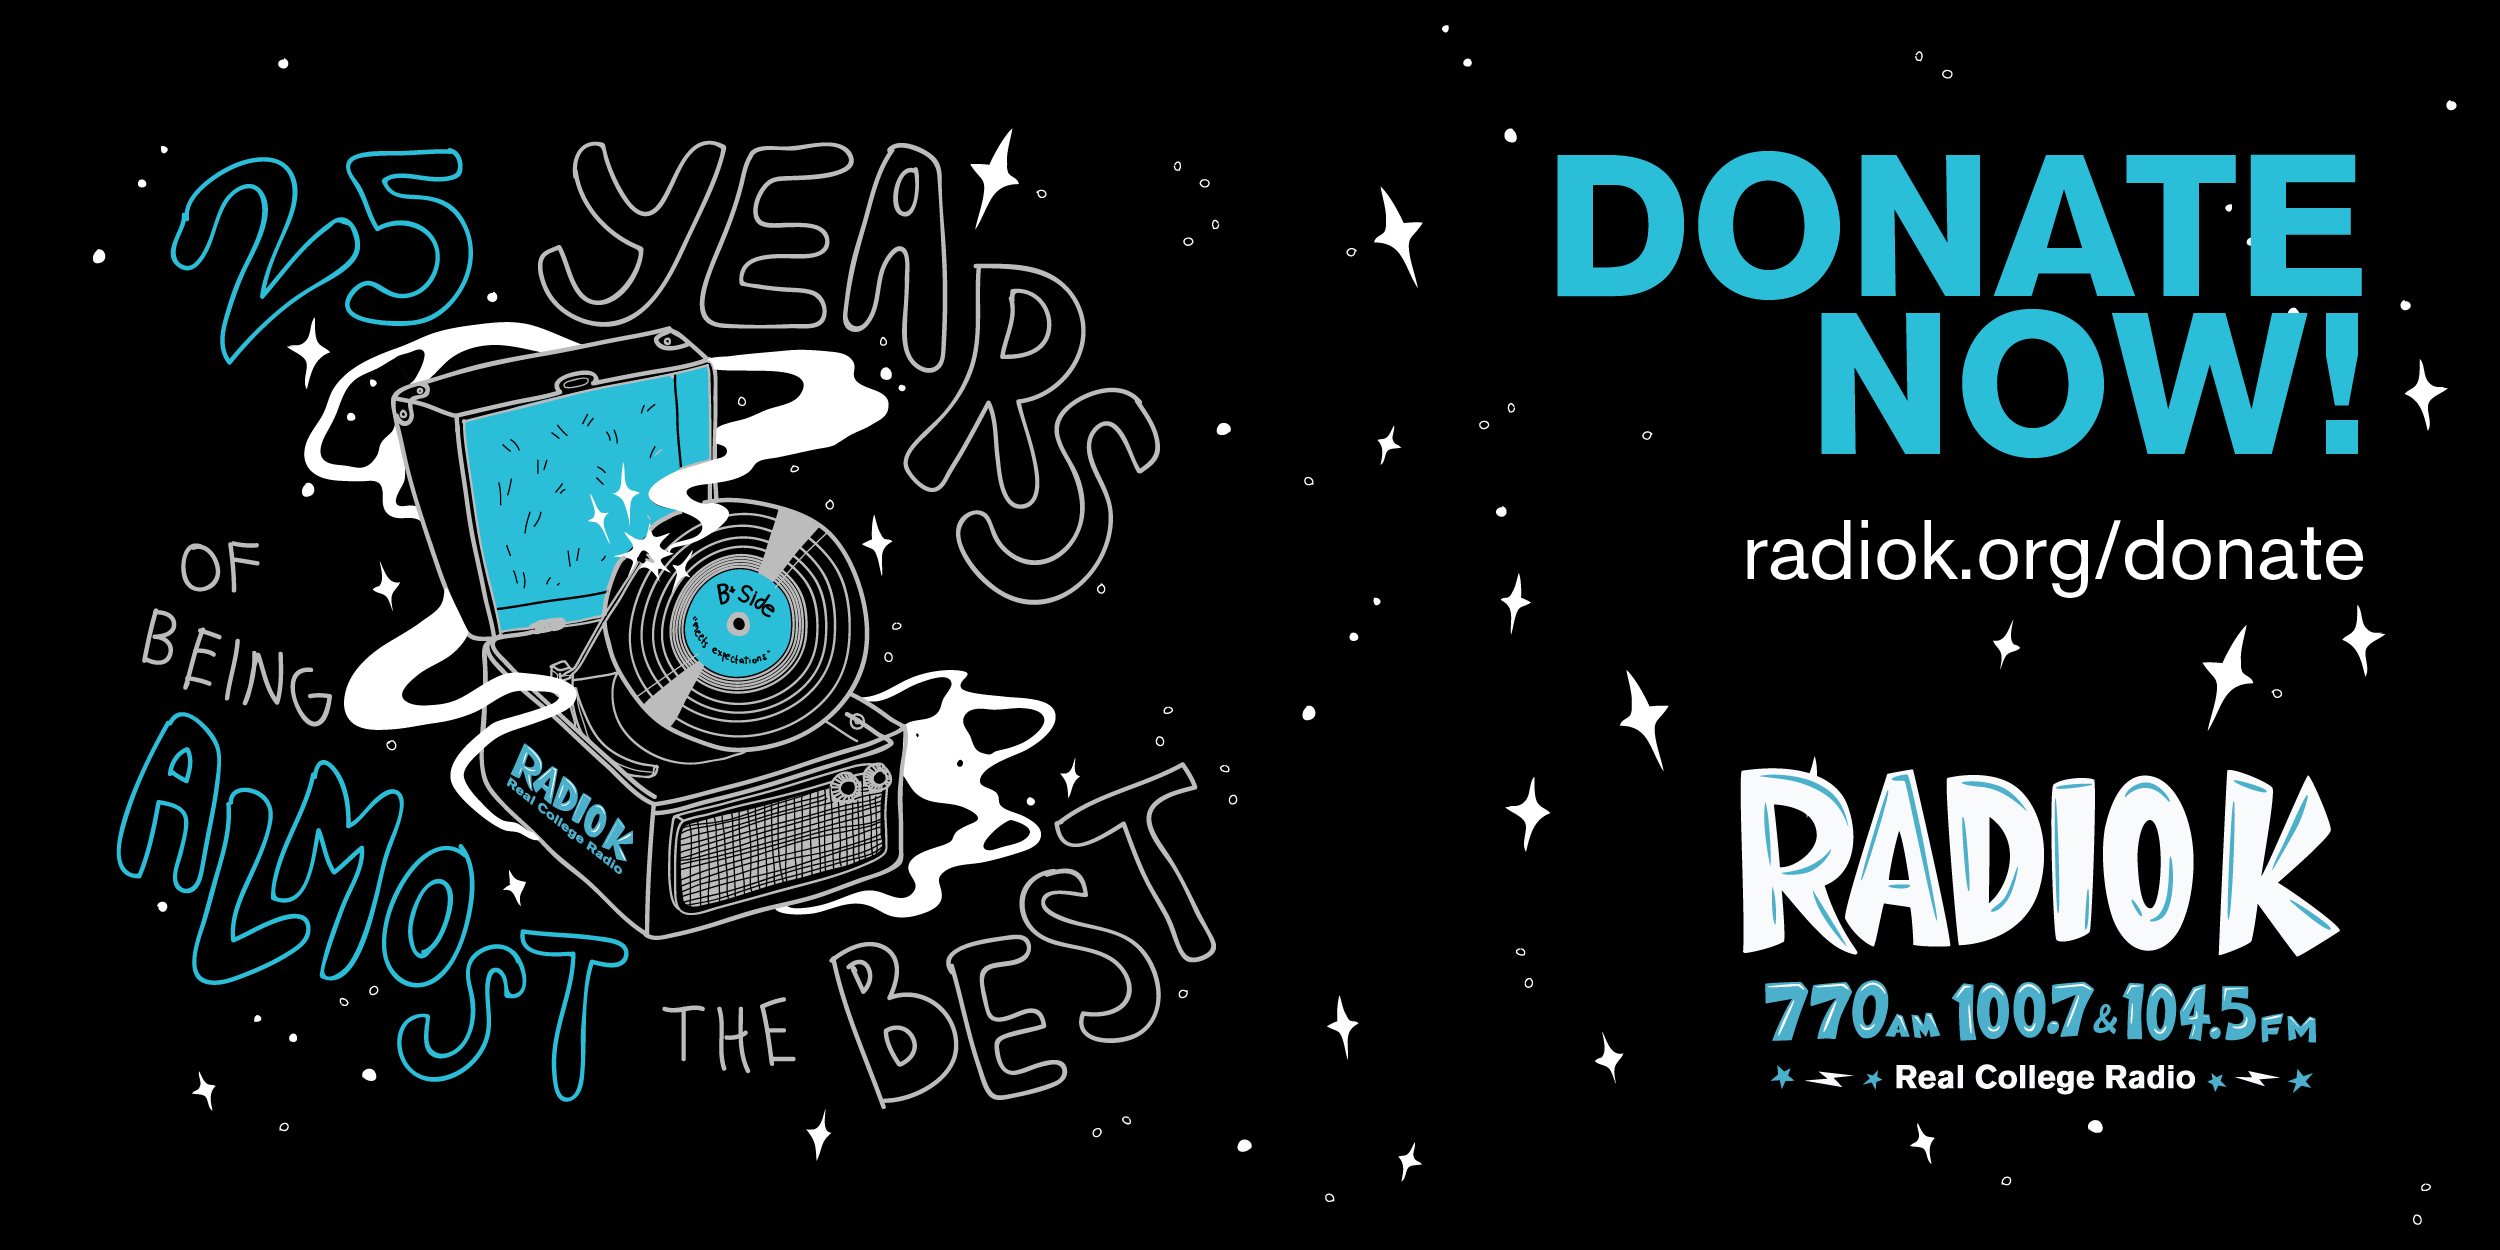 25 Years of Being Almost the Best. Donate now! radiok.org/donate